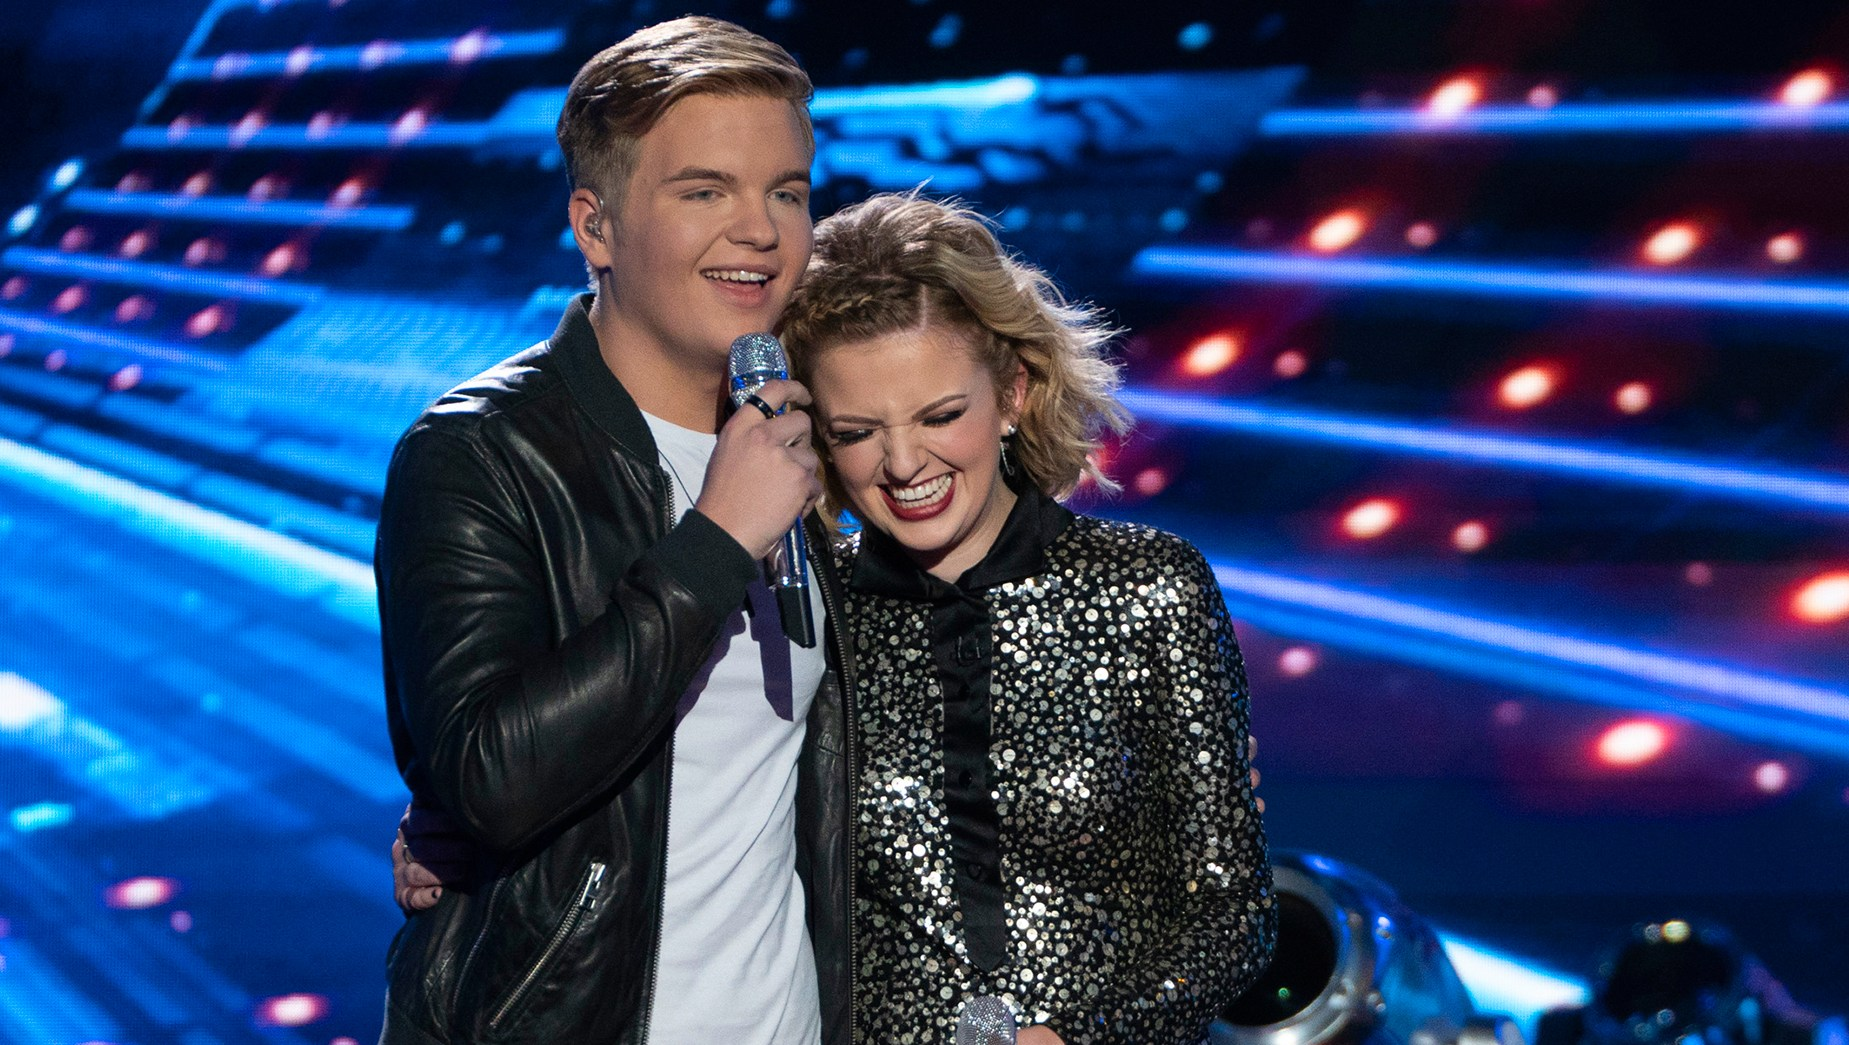 Caleb Lee Hutchinson and Maddie Poppe